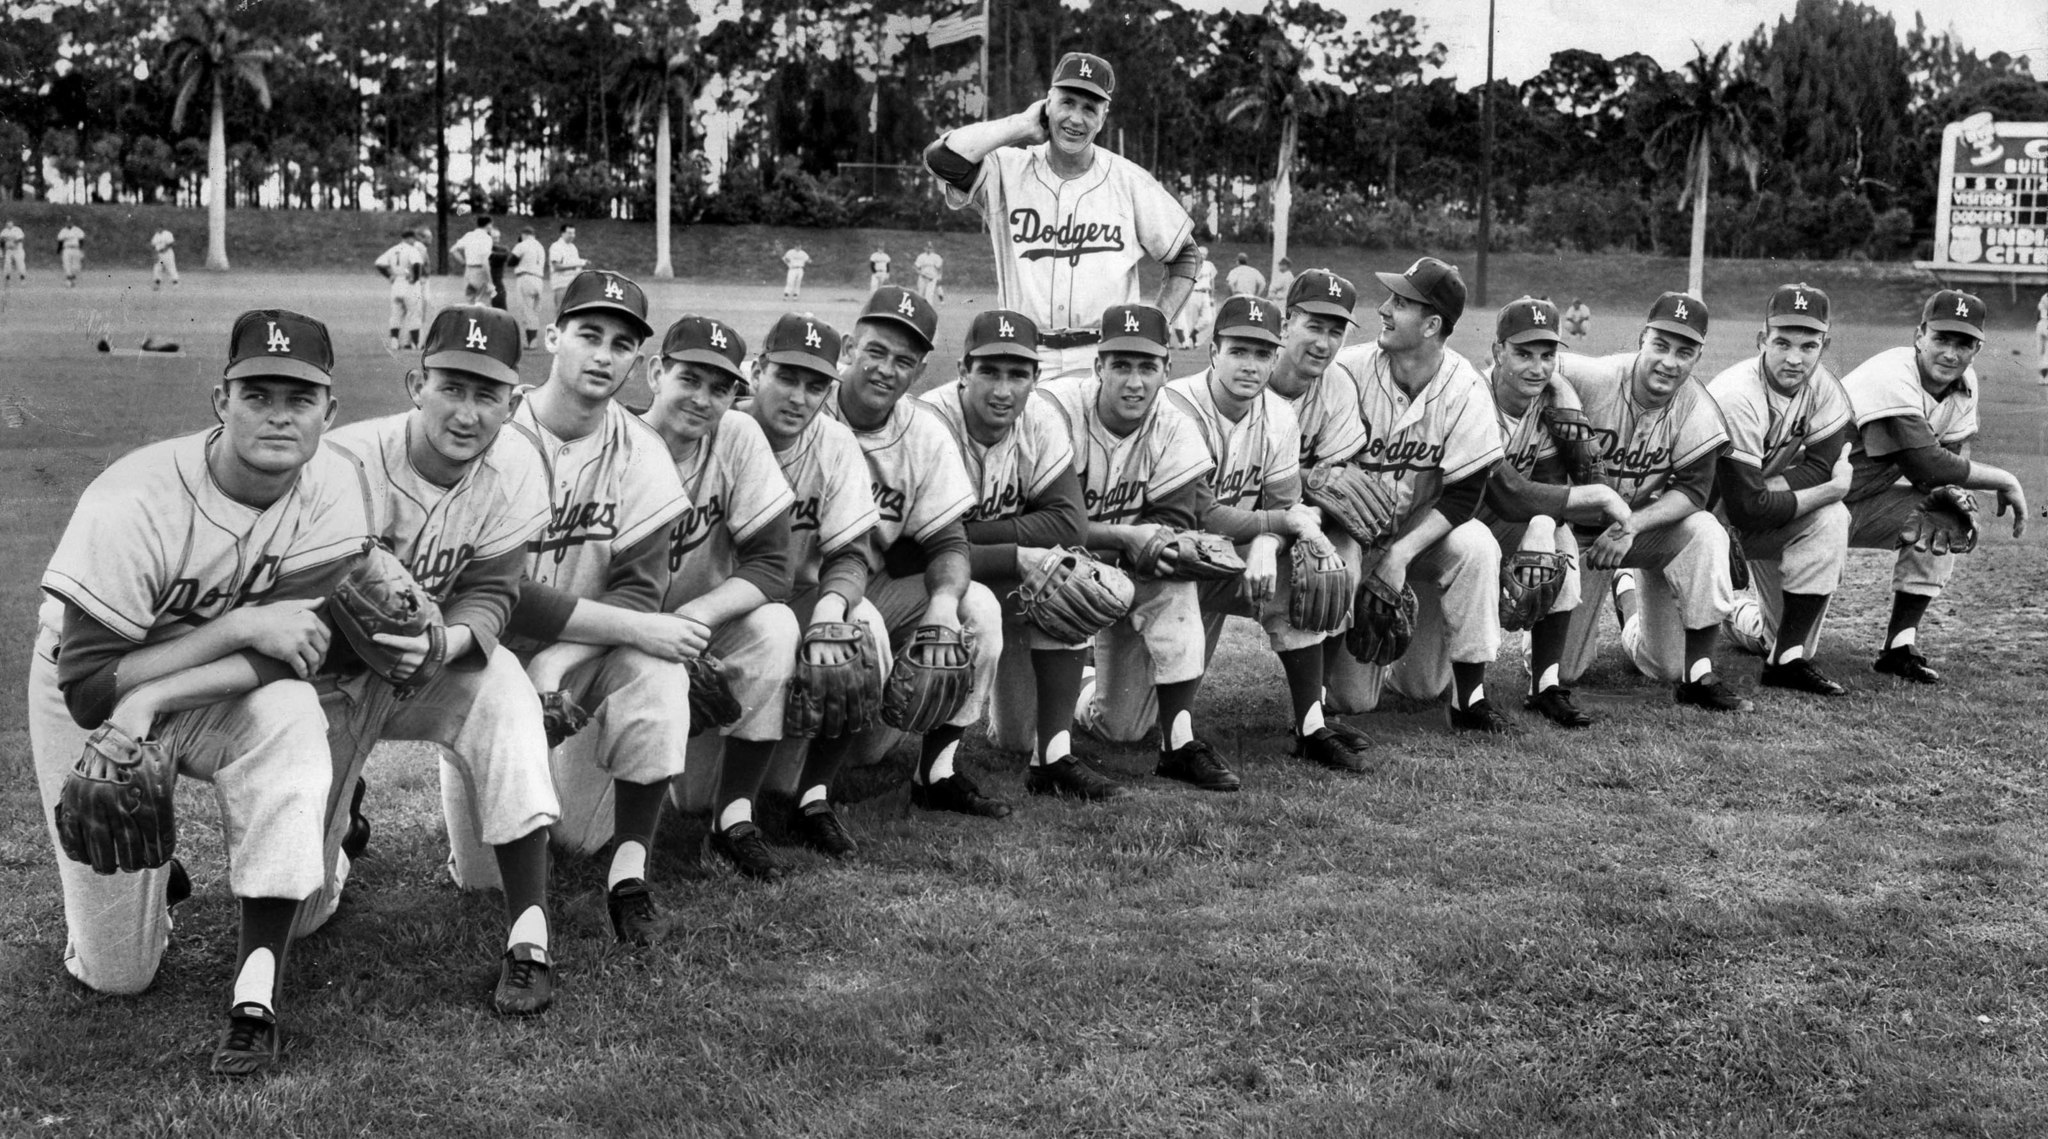 March 8, 1959: Dodgers manager Walt Alson, standing, with his pitchers at Vero Beach, Florida. From